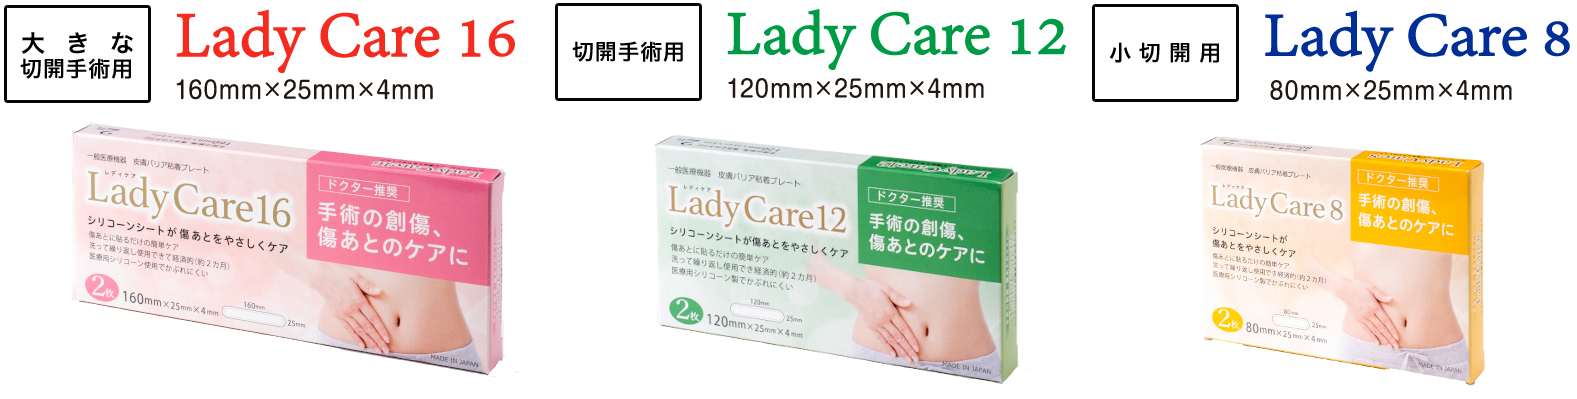 Lady Care 16, Lady Care 12, Lady Care 8